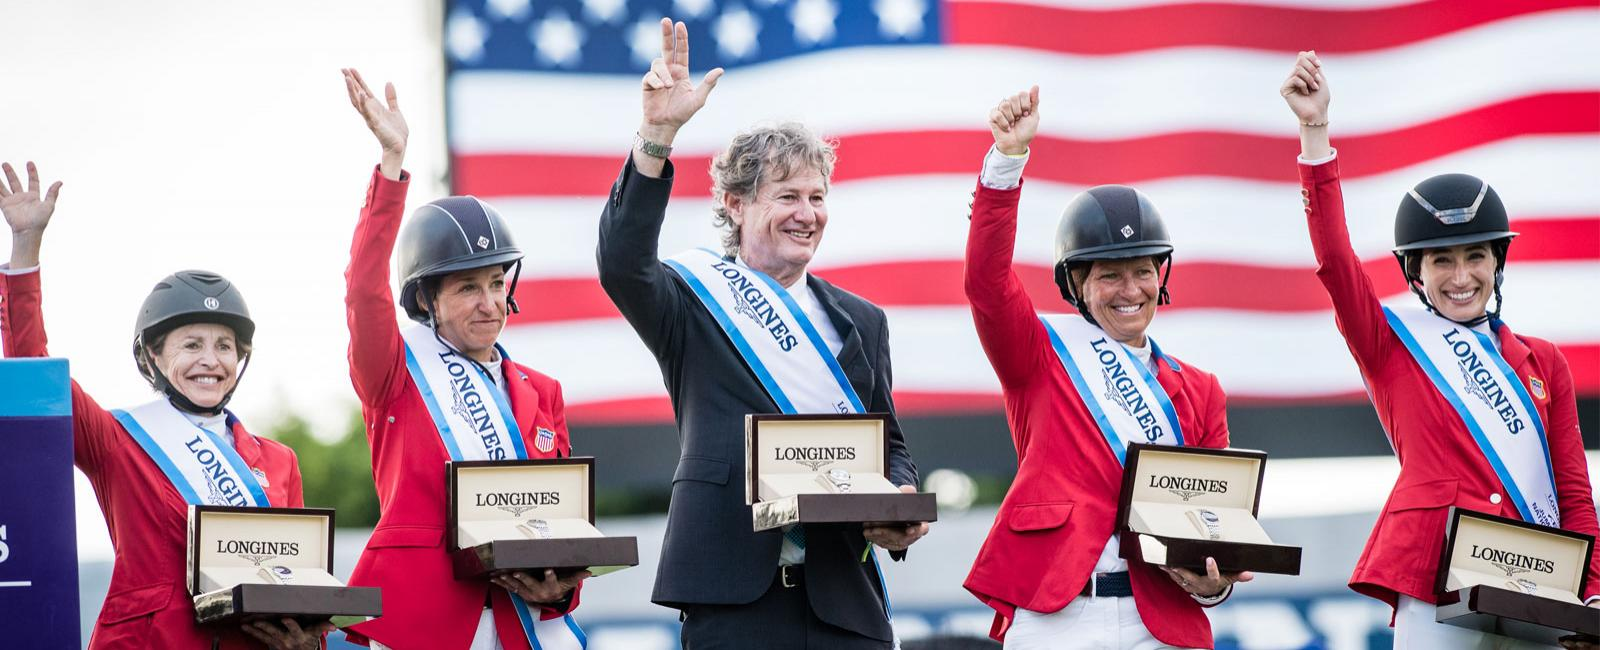 Team USA claimed victory in the first leg of the 2020 Longines FEI Jumping Nations Cup season on home soil